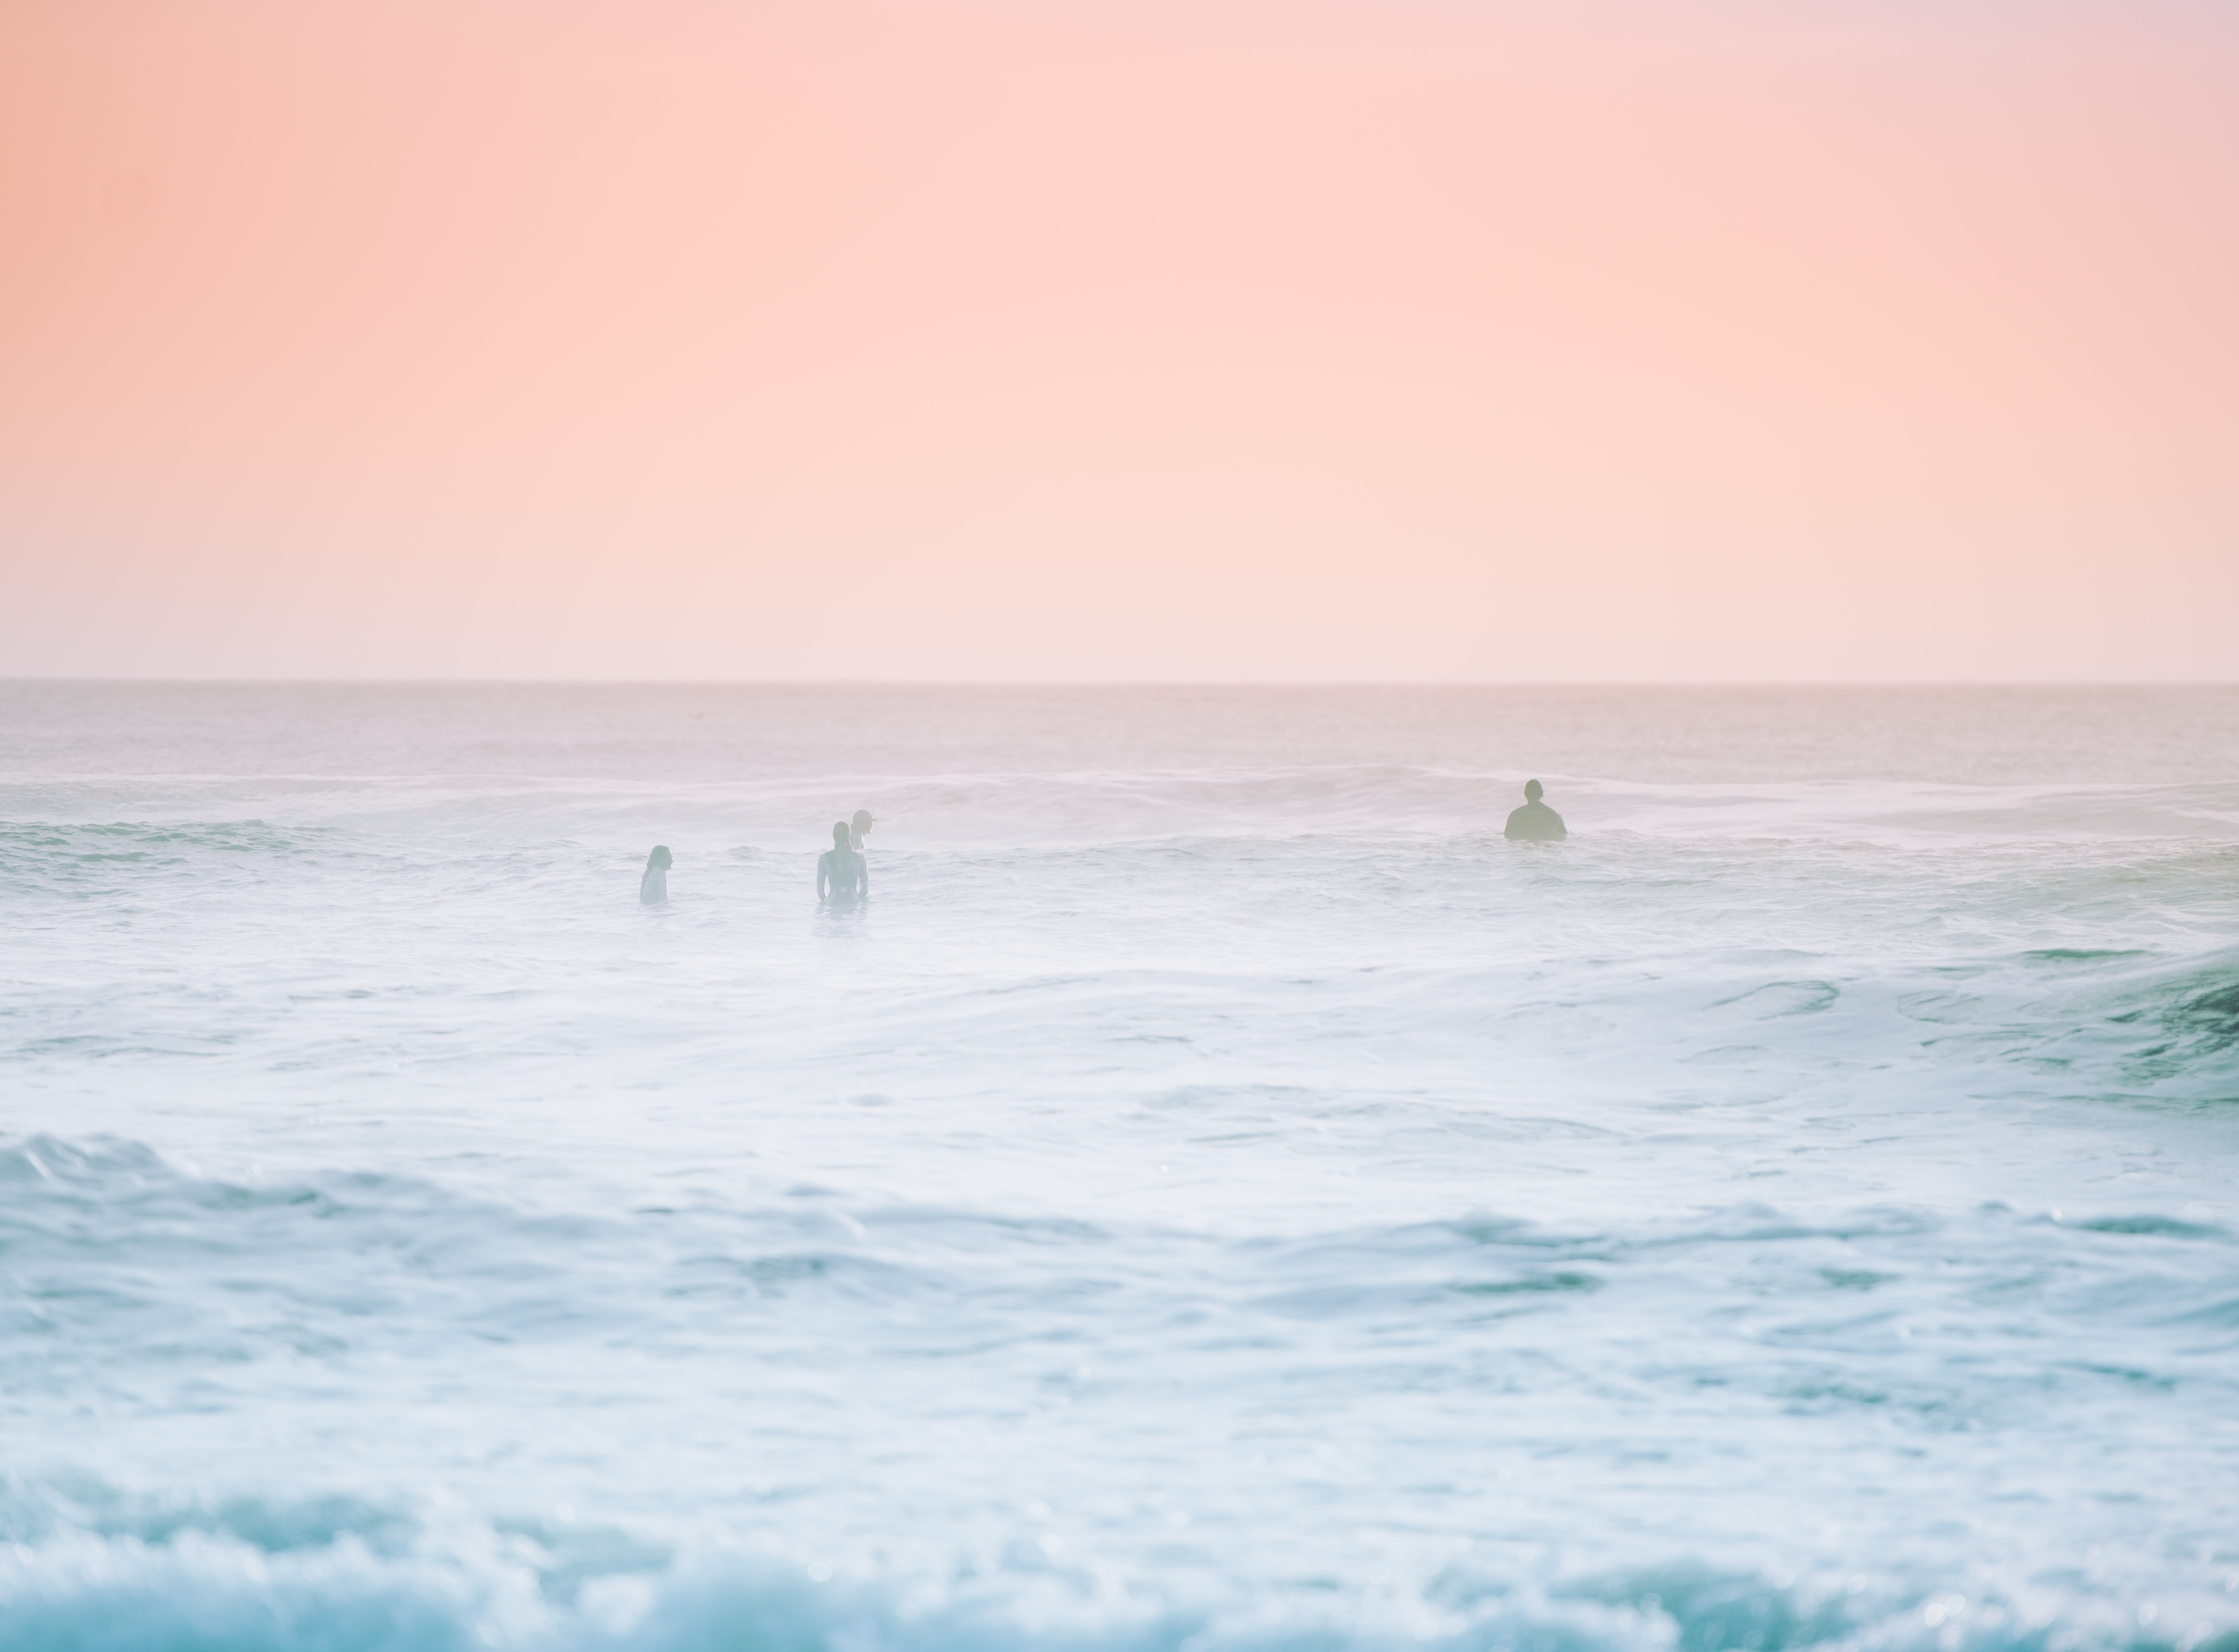 Pastel Blue Aesthetic Wallpaper Beach Like Or Reblog If You Save Amp Give Credit If You Repost Blue aesthetic desktop wallpapers top free blue aesthetic. pastel blue aesthetic wallpaper beach